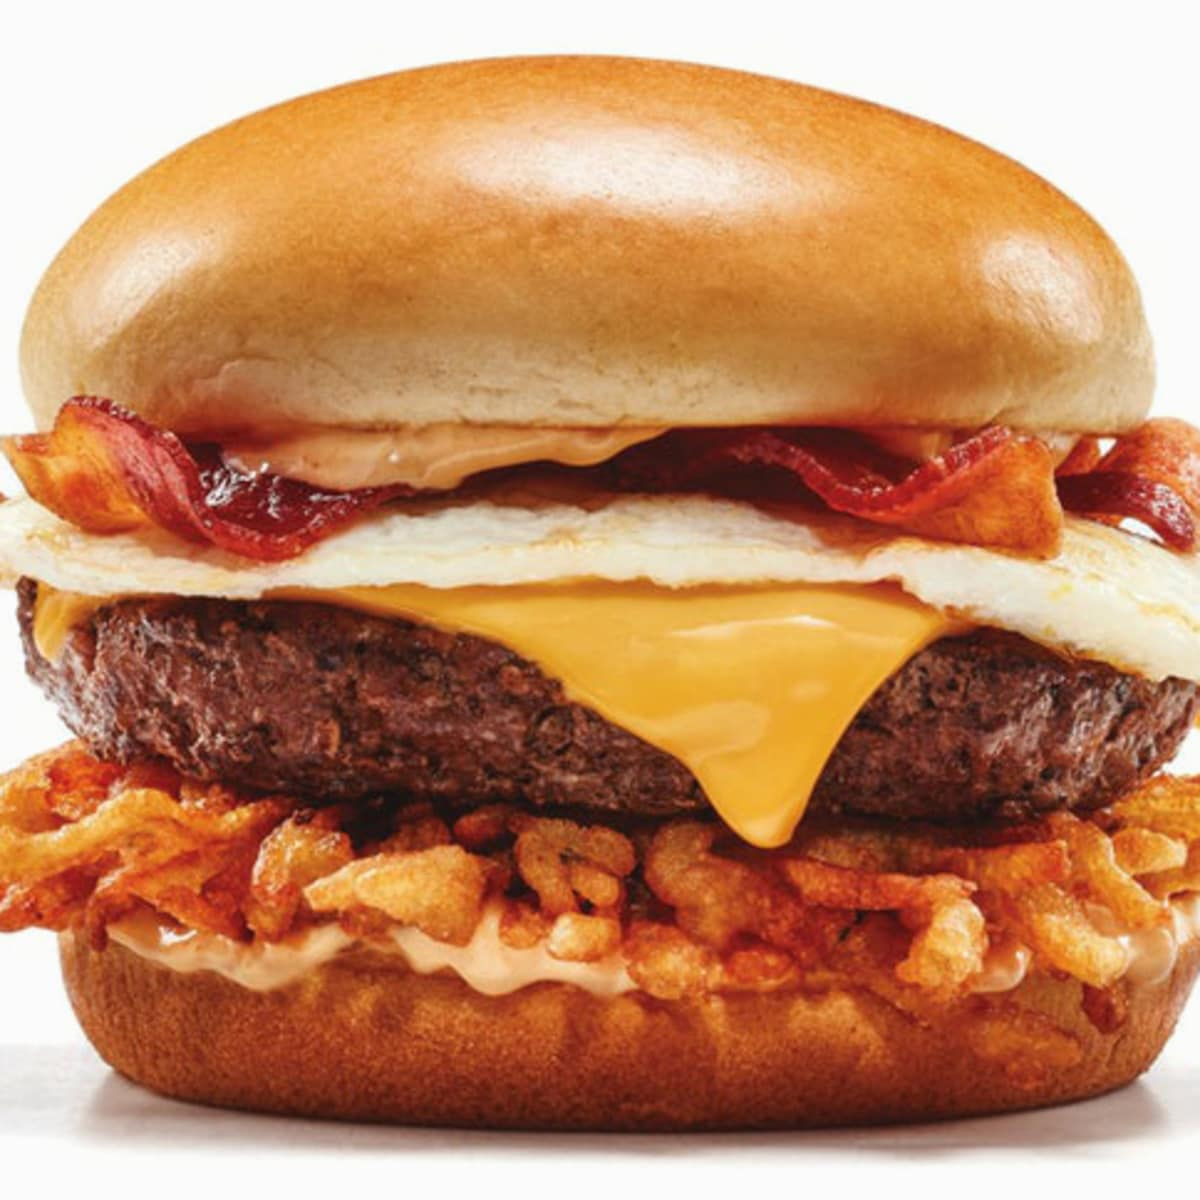 Ihop ihob big brunch burger drive-thru gourmet ken hoffman